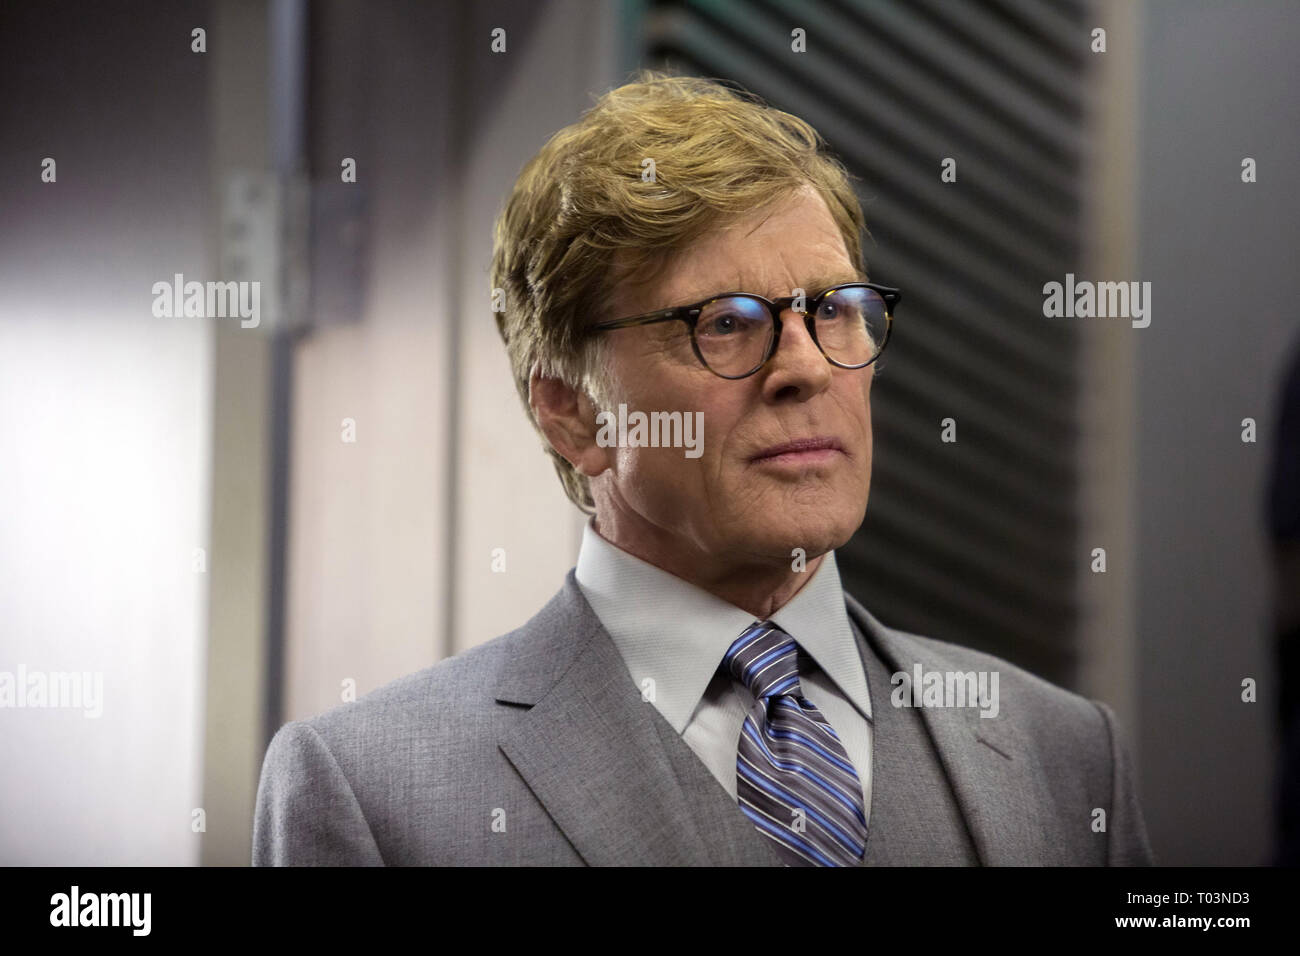 ROBERT REDFORD, CAPTAIN AMERICA: THE WINTER SOLDIER, 2014 - Stock Image